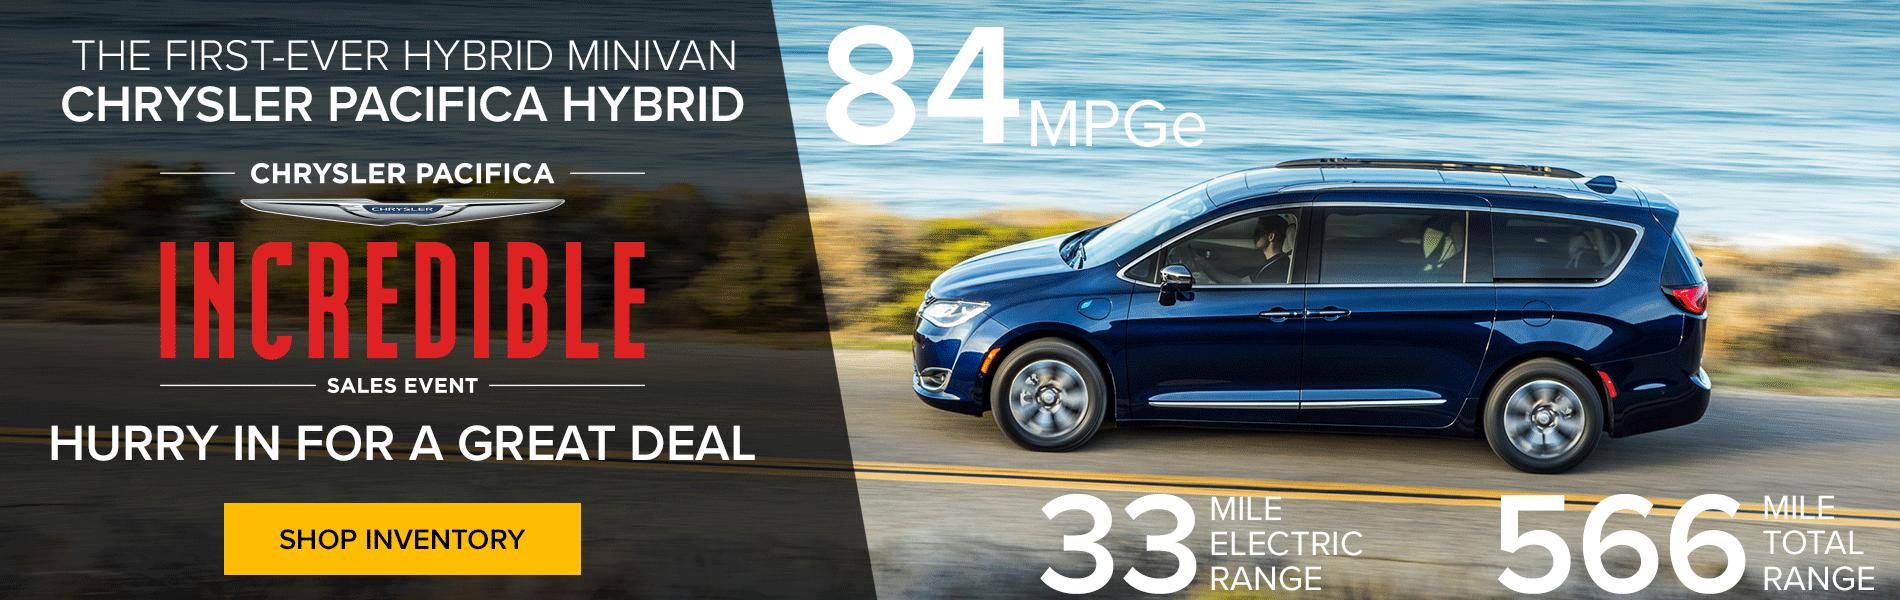 The first-ever hybrid minivan. The Chrysler Pacifica Hybrid. Be a super hero family.